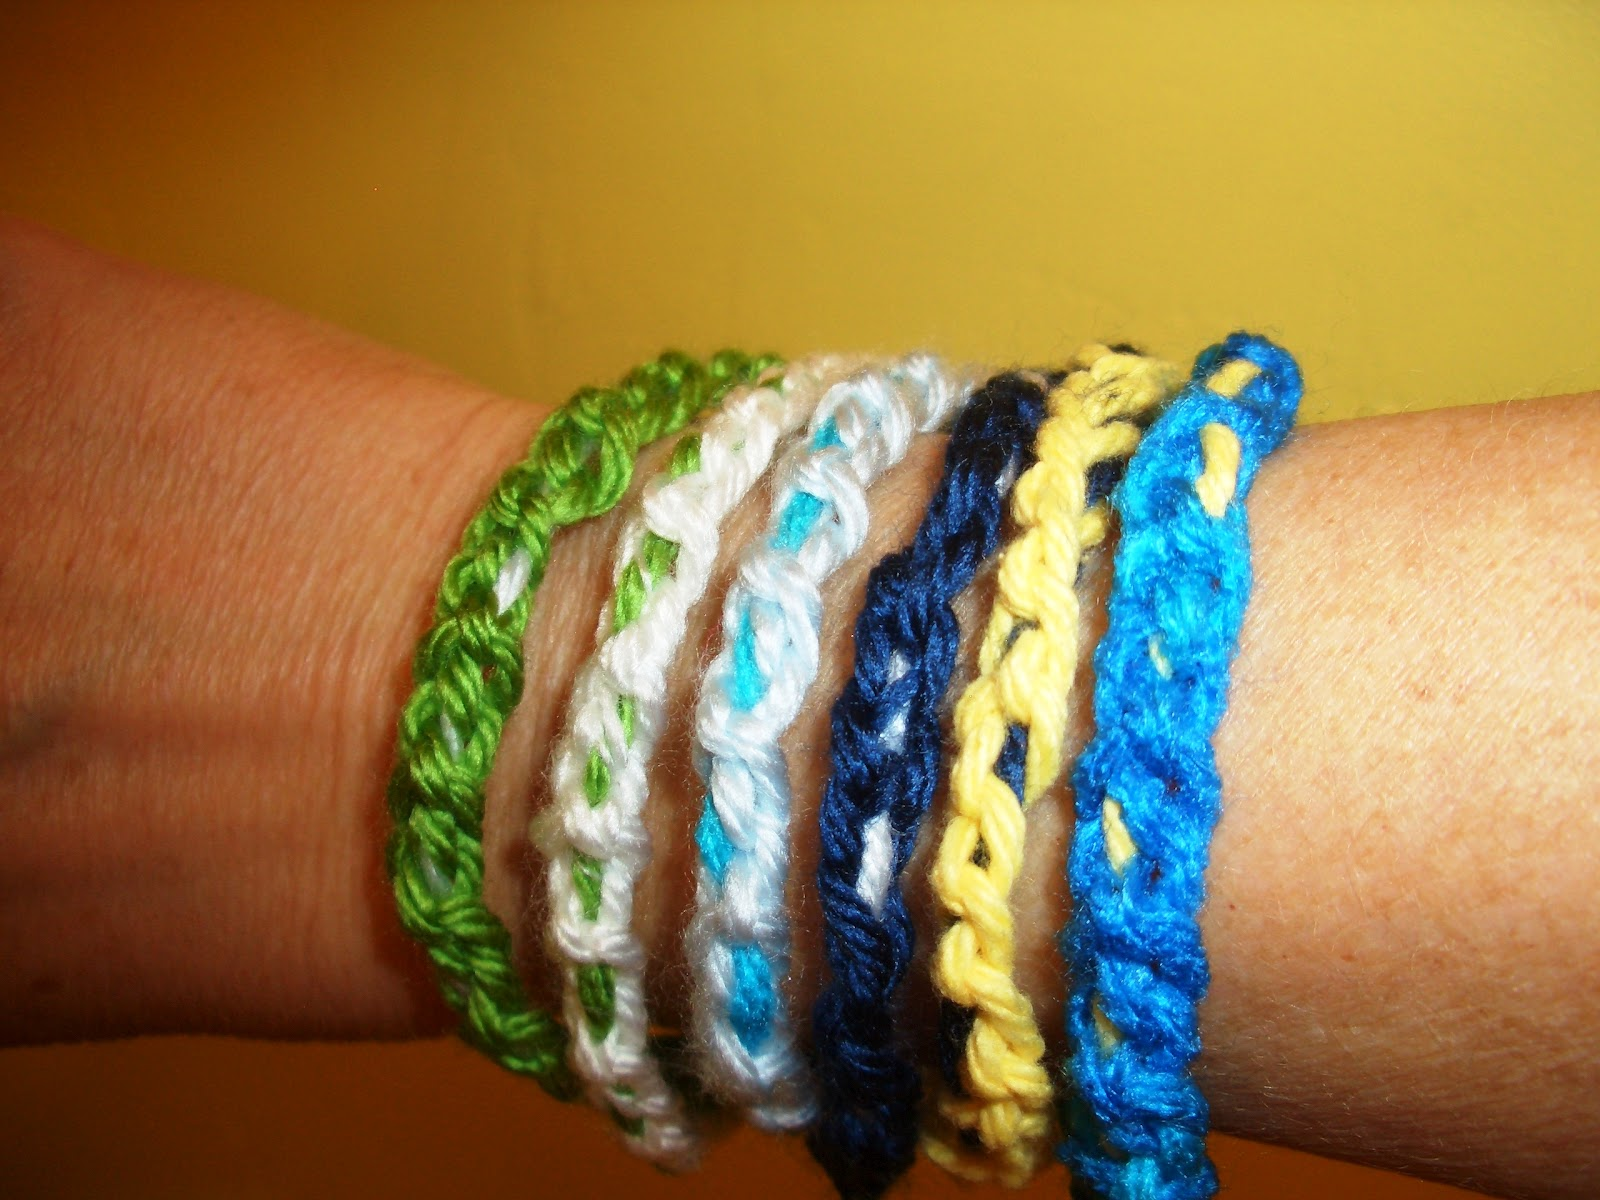 Crochet Jewelry Patterns For Beginners : Crochet Parfait: Free Pattern: Chain Stitch Bangle Bracelet